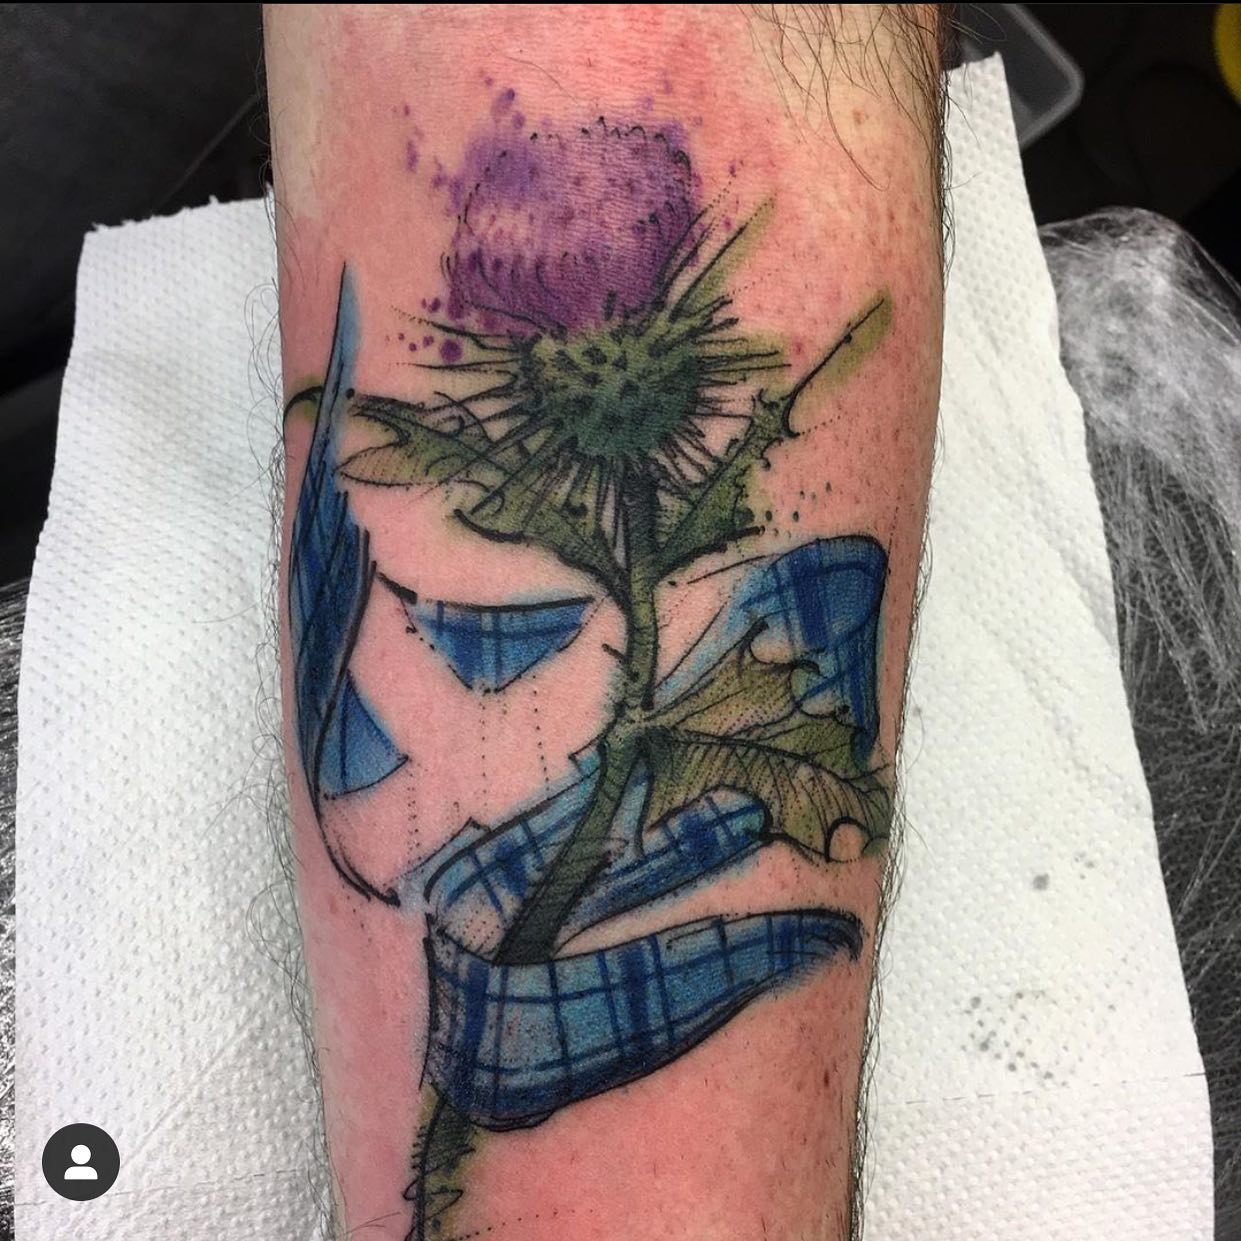 It wouldn't be a residency without a thistle. @manny.tattoos showing us his epic take on the country classic! ————— ————— uktattooartists uktattoo inked inkedmag skinart skinartmag traditionaltattoo tradworkers colourtattoos scotland edinburghtattoo edinburghlife scotlandtattoo uktta oldschooltattoo fineline cleanwork inkdup inkd skindeep performer besttattoos blackclaw girlswithtattoos uktattoosupplies blackclaw solidink sailorjerry blackclaw starbritecolors studioxiii @barber_dts @easytattoo_uk @eternalink @dynamiccolor @lockdownneedle @stencilstuff